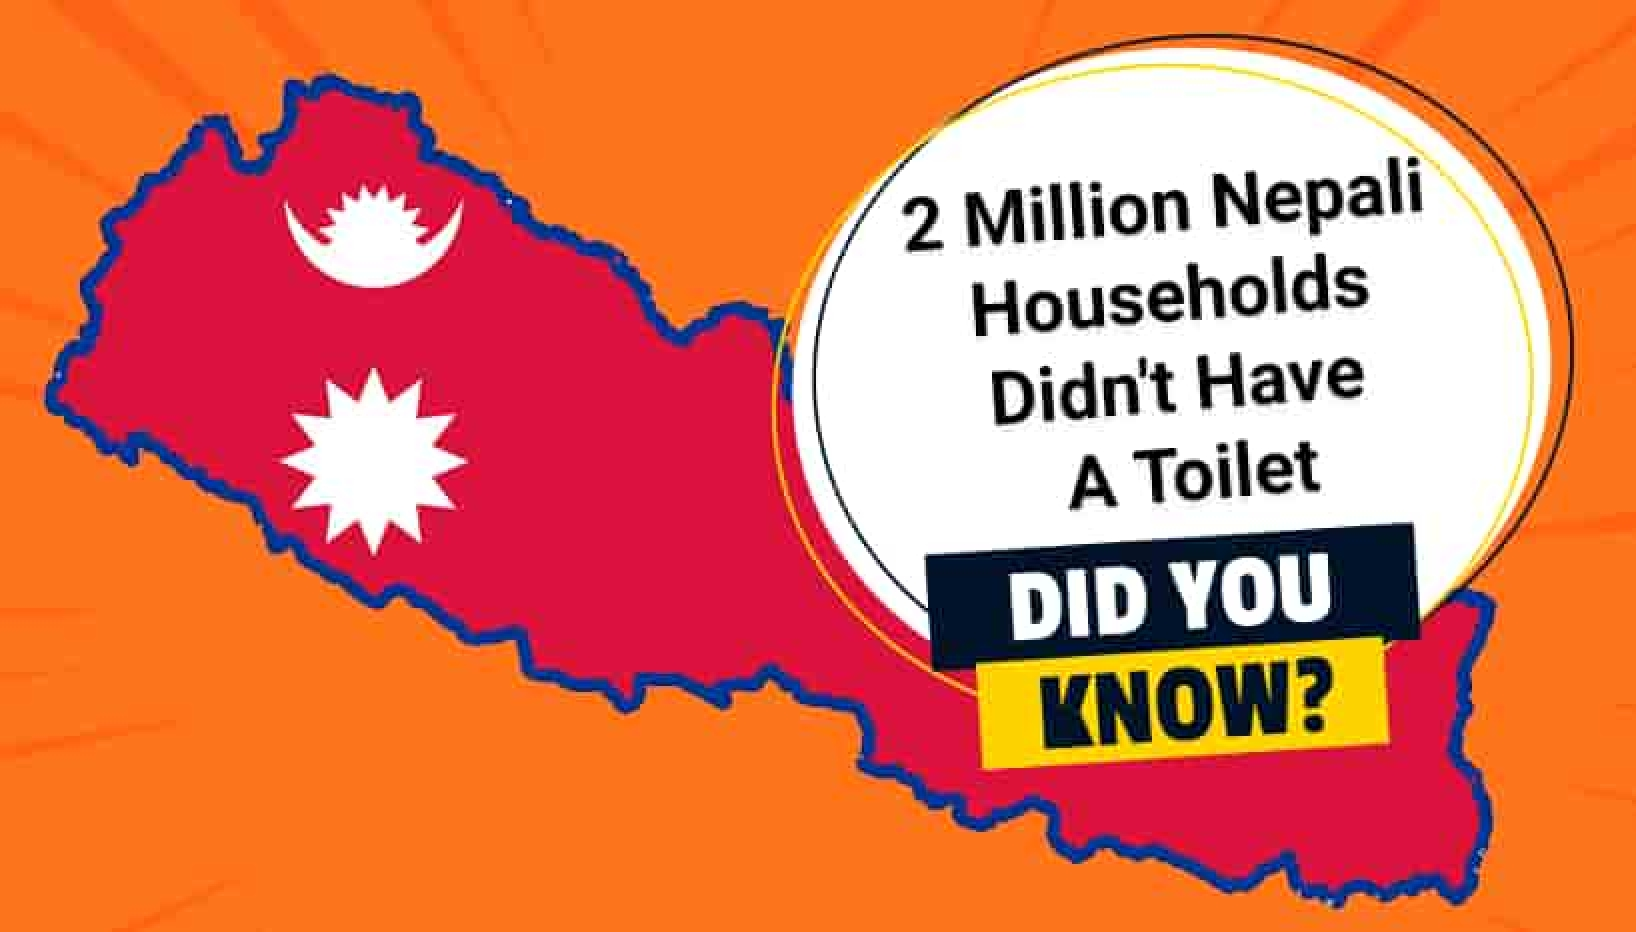 2 Million Nepali Households Didn't Have A Toilet; 10 Interesting Fact Nuggets From The 2011 Census